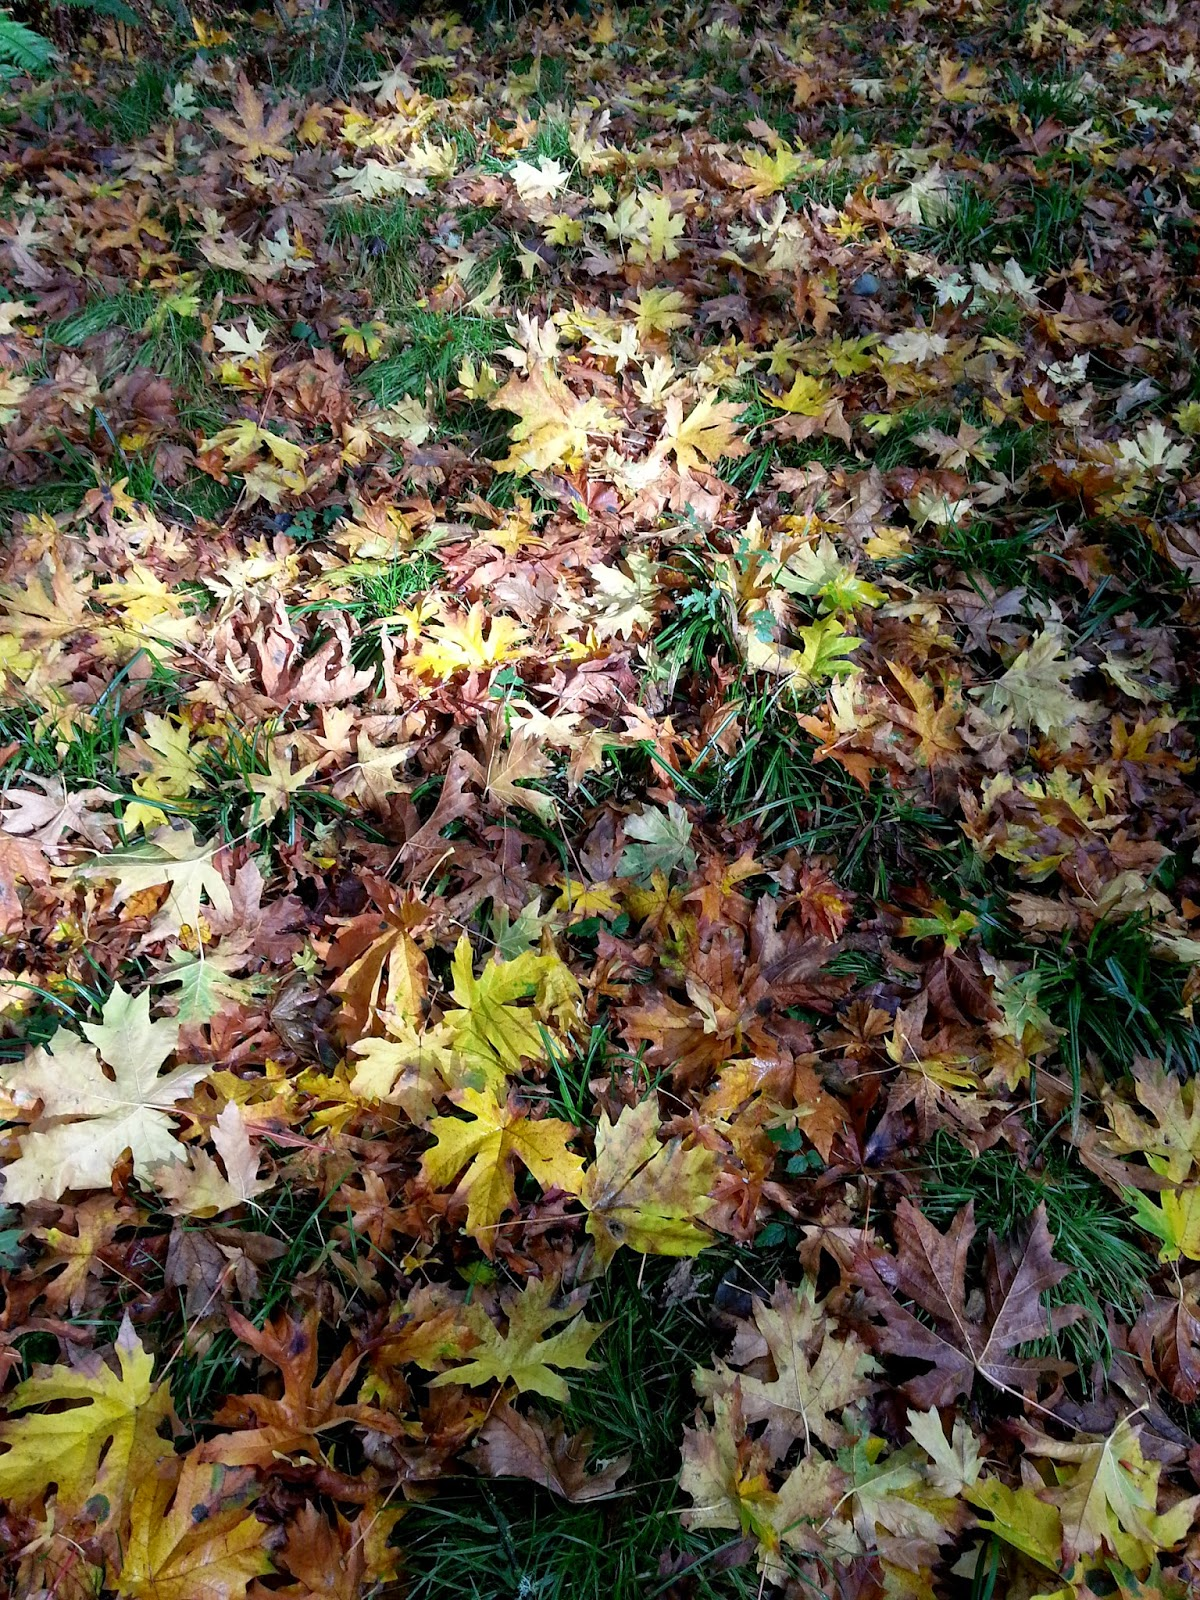 Autumn leaves on the way to Robert & Kate's wedding ceremony - Patricia Stimac, Seattle Wedding Officiant